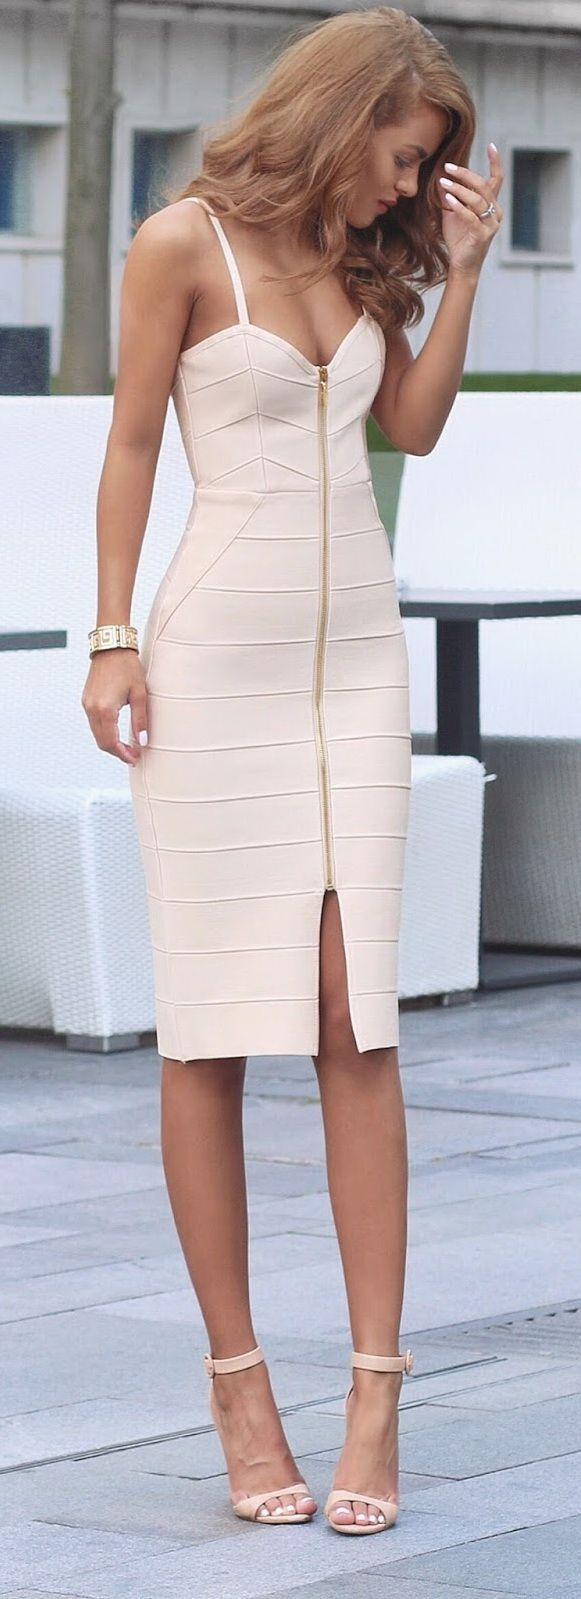 Dresses With Nude Heels FGqMj52w